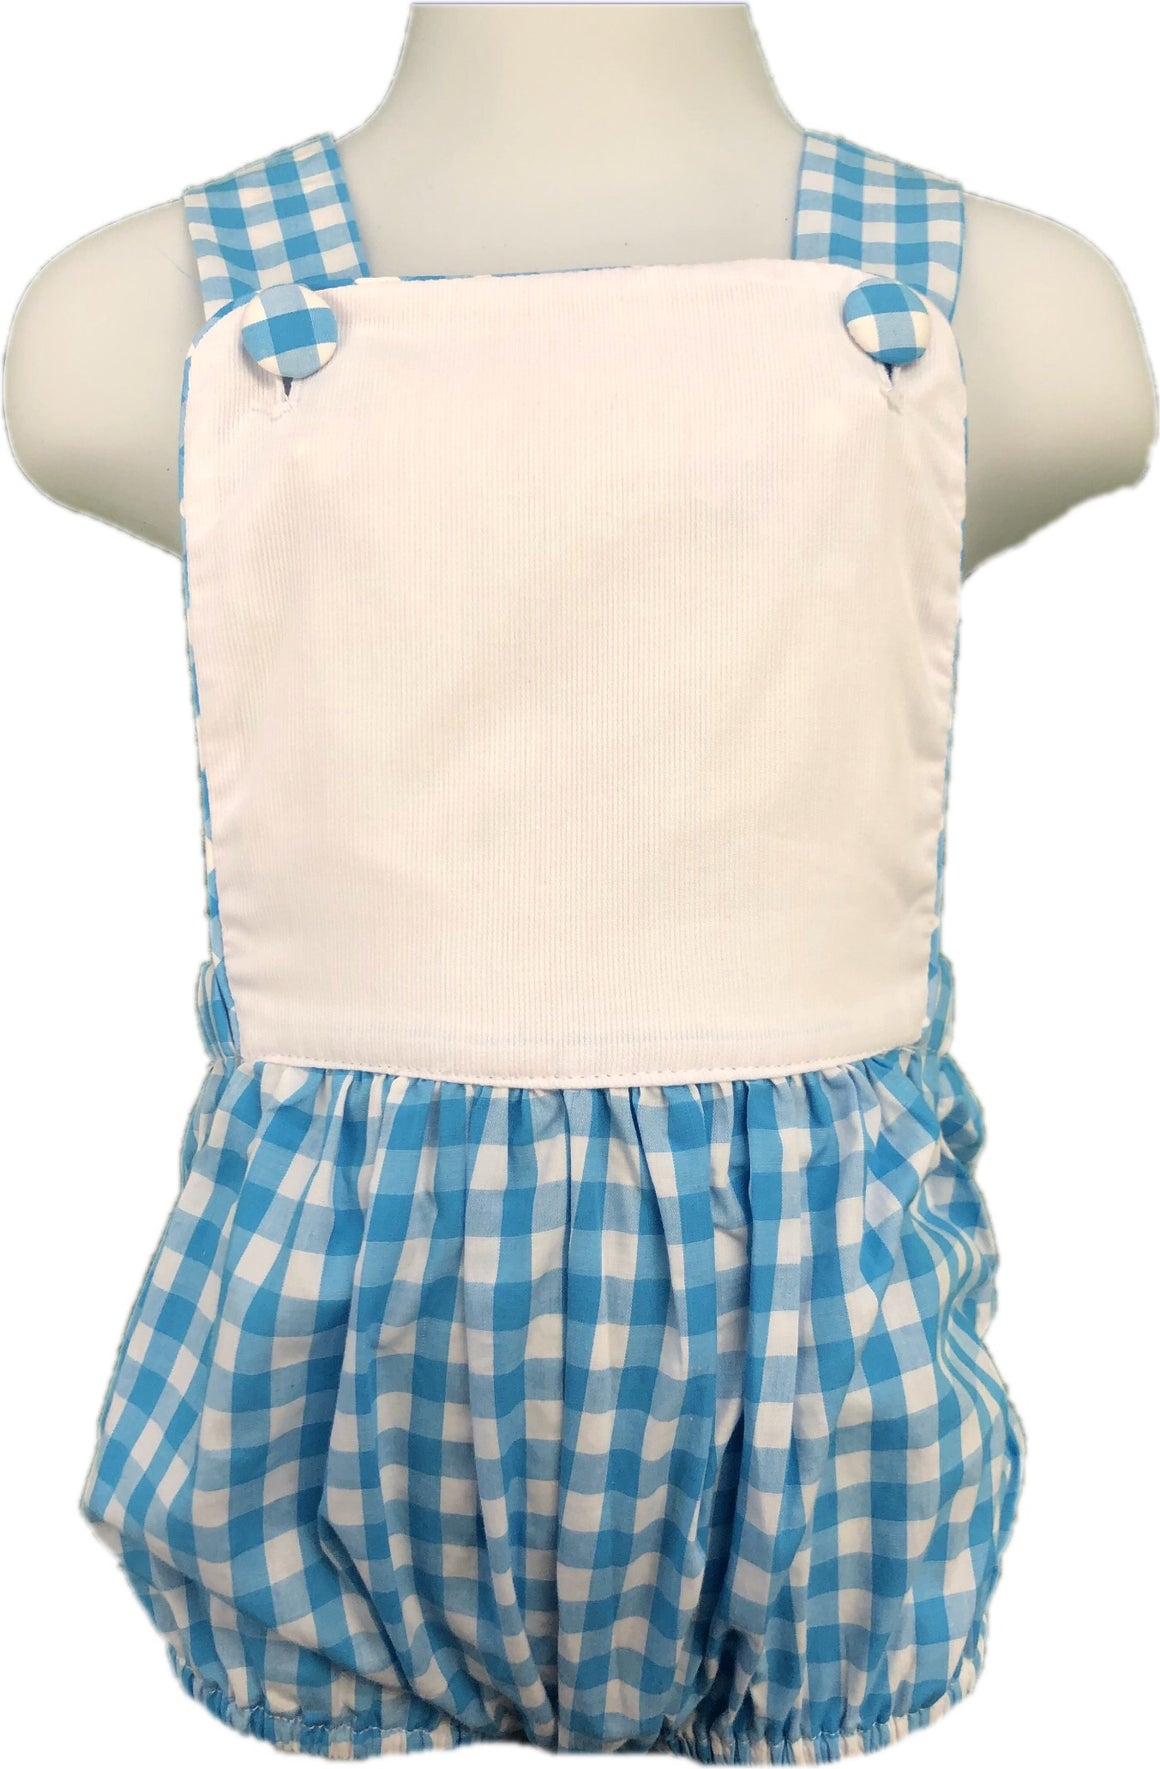 Sunsuit: Turquoise Gingham Blank